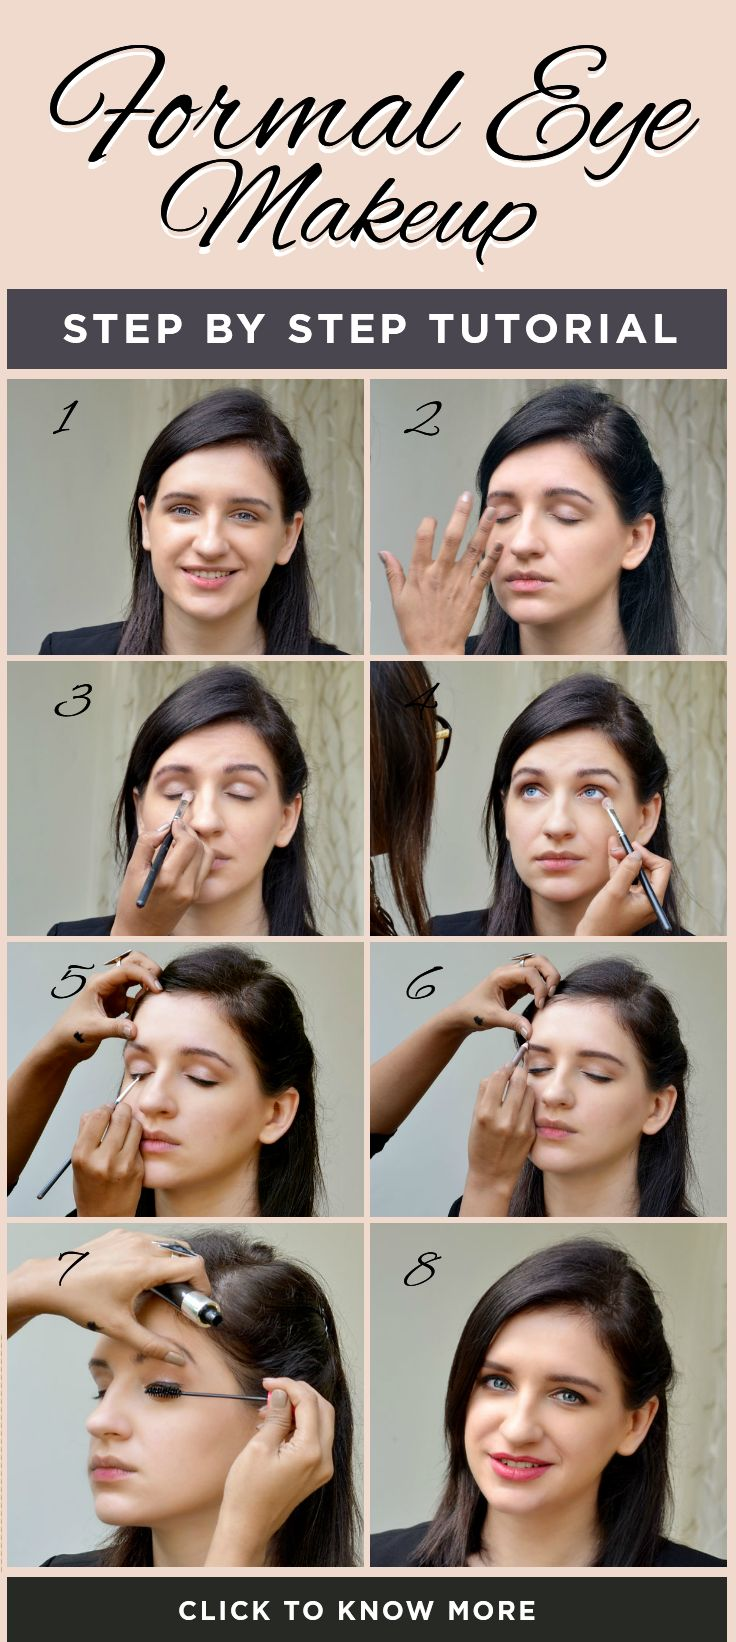 Makeup tutorials with pictures image collections any tutorial estee lauder eye makeup tutorial images any tutorial examples 2318 best makeup tutorials images on pinterest baditri Gallery